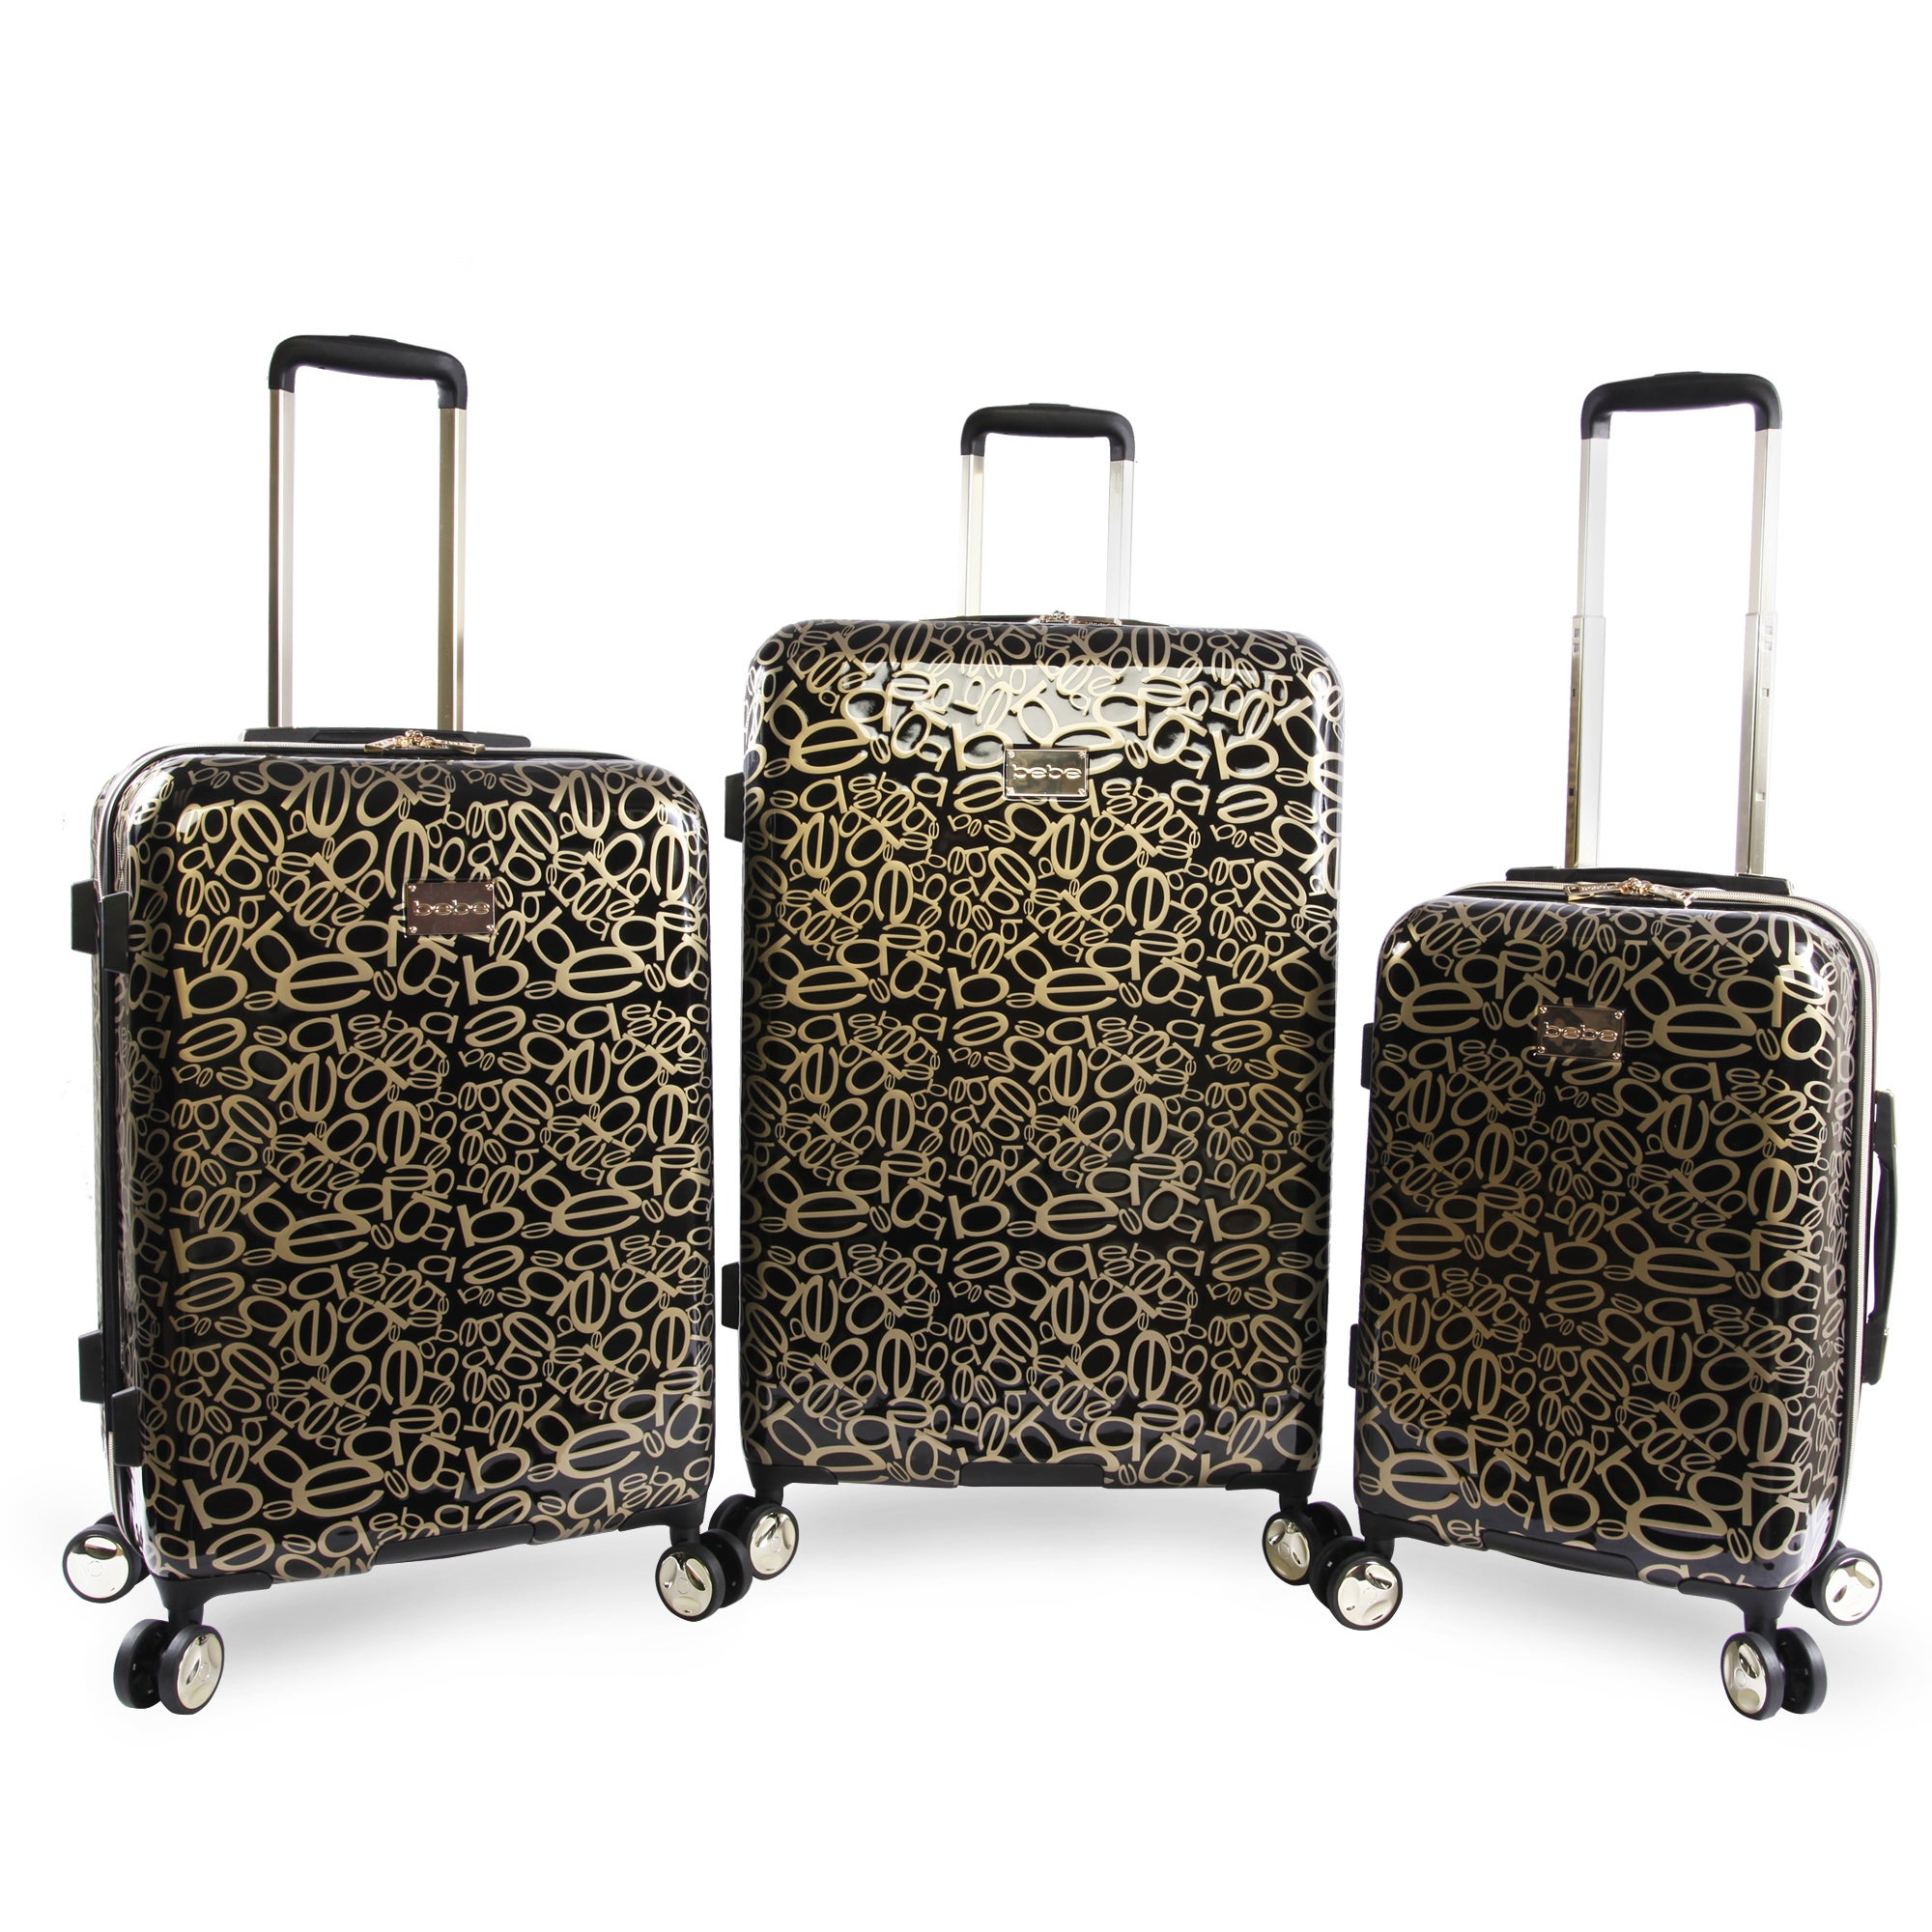 3415a8ff9 BEBE Annabelle 3-piece Hardside Spinner Luggage Set